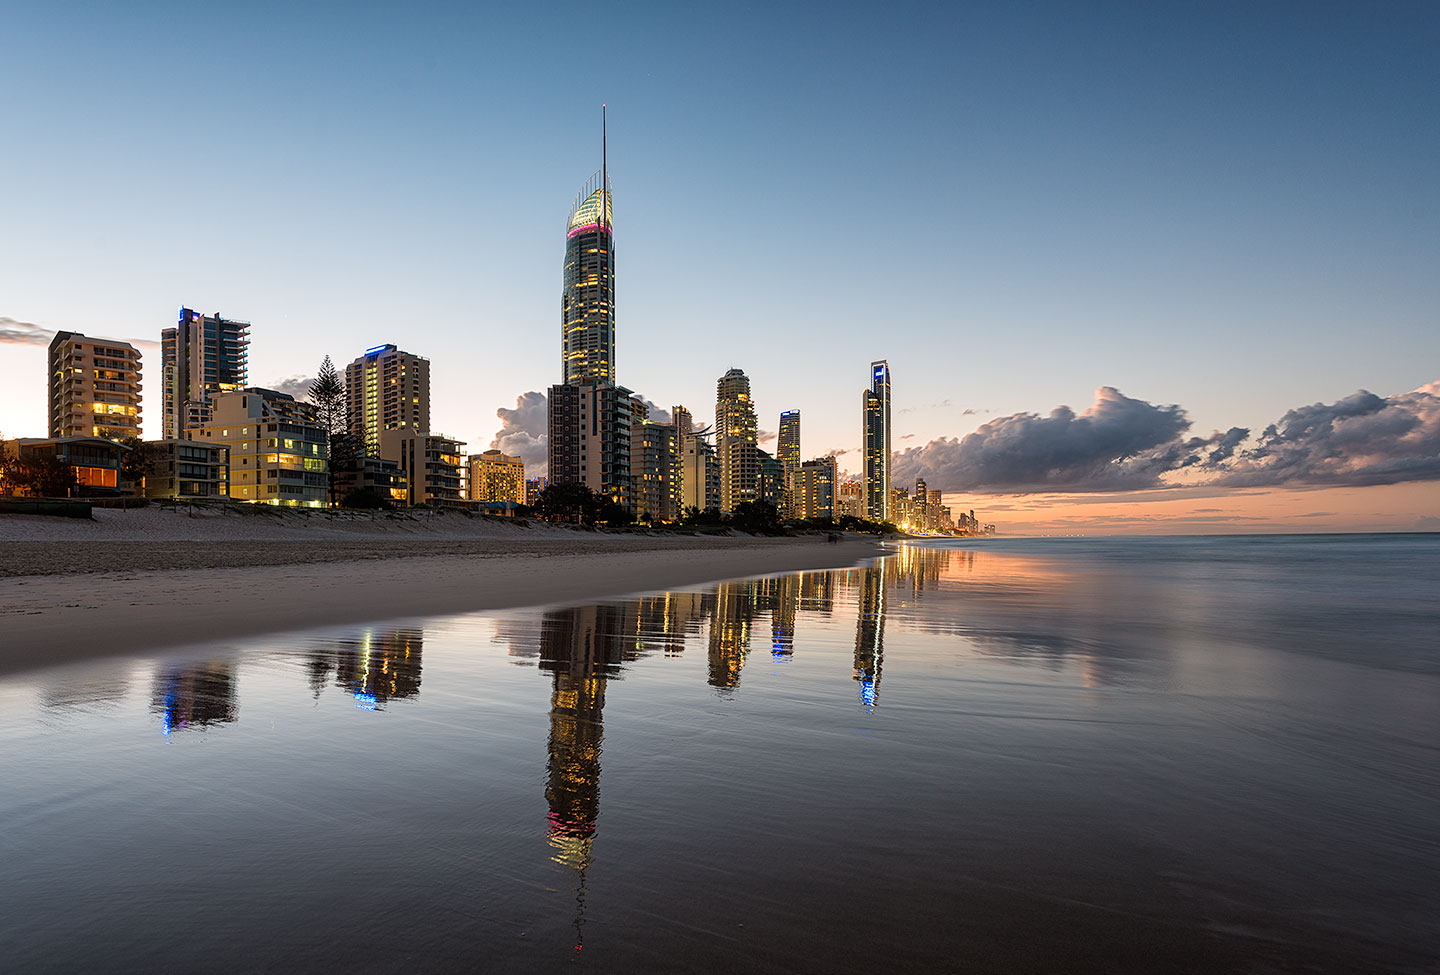 ©2014 Elia Locardi - All Rights Reserved. Surfers Paradise Queensland, Australia.